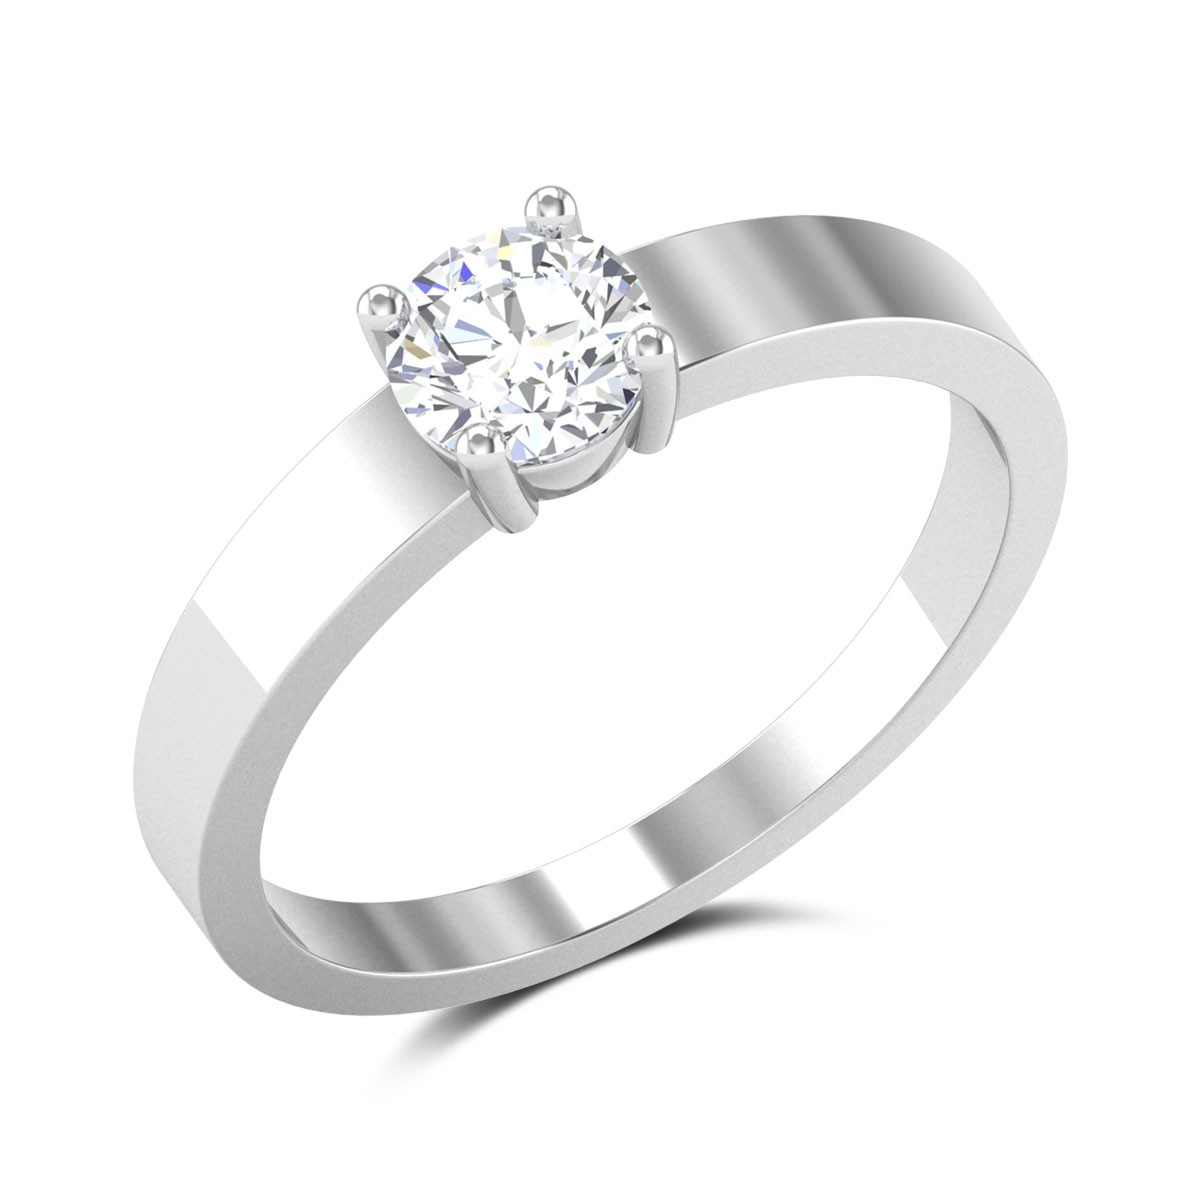 Tiberius 4 Prong Solitaire Ring